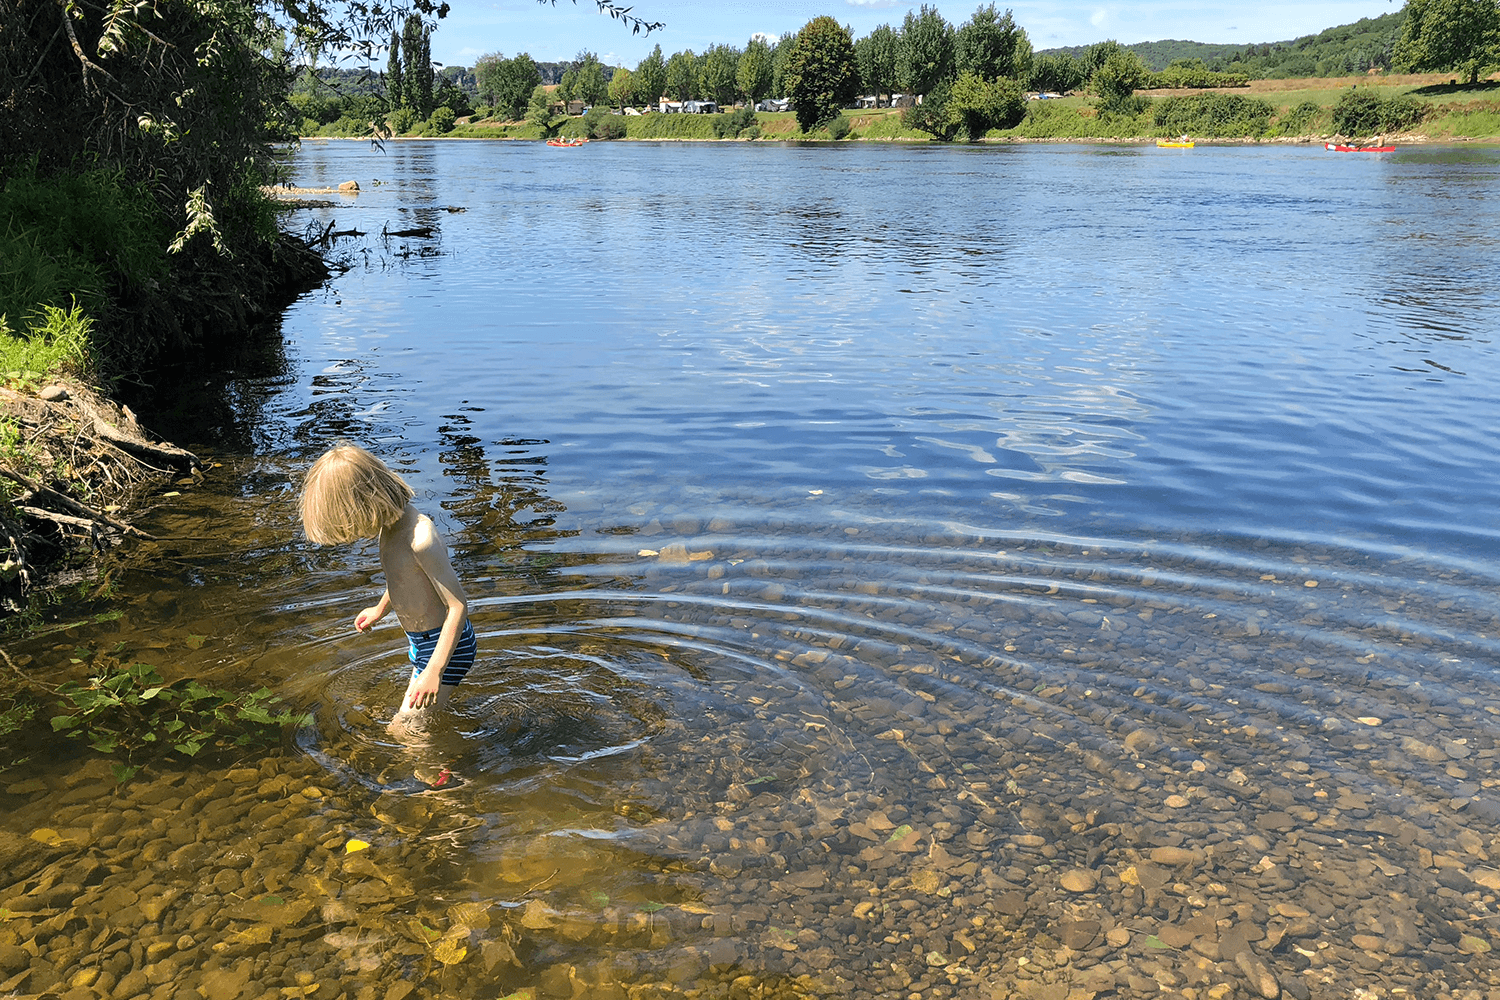 Toby paddling in the Dordogne